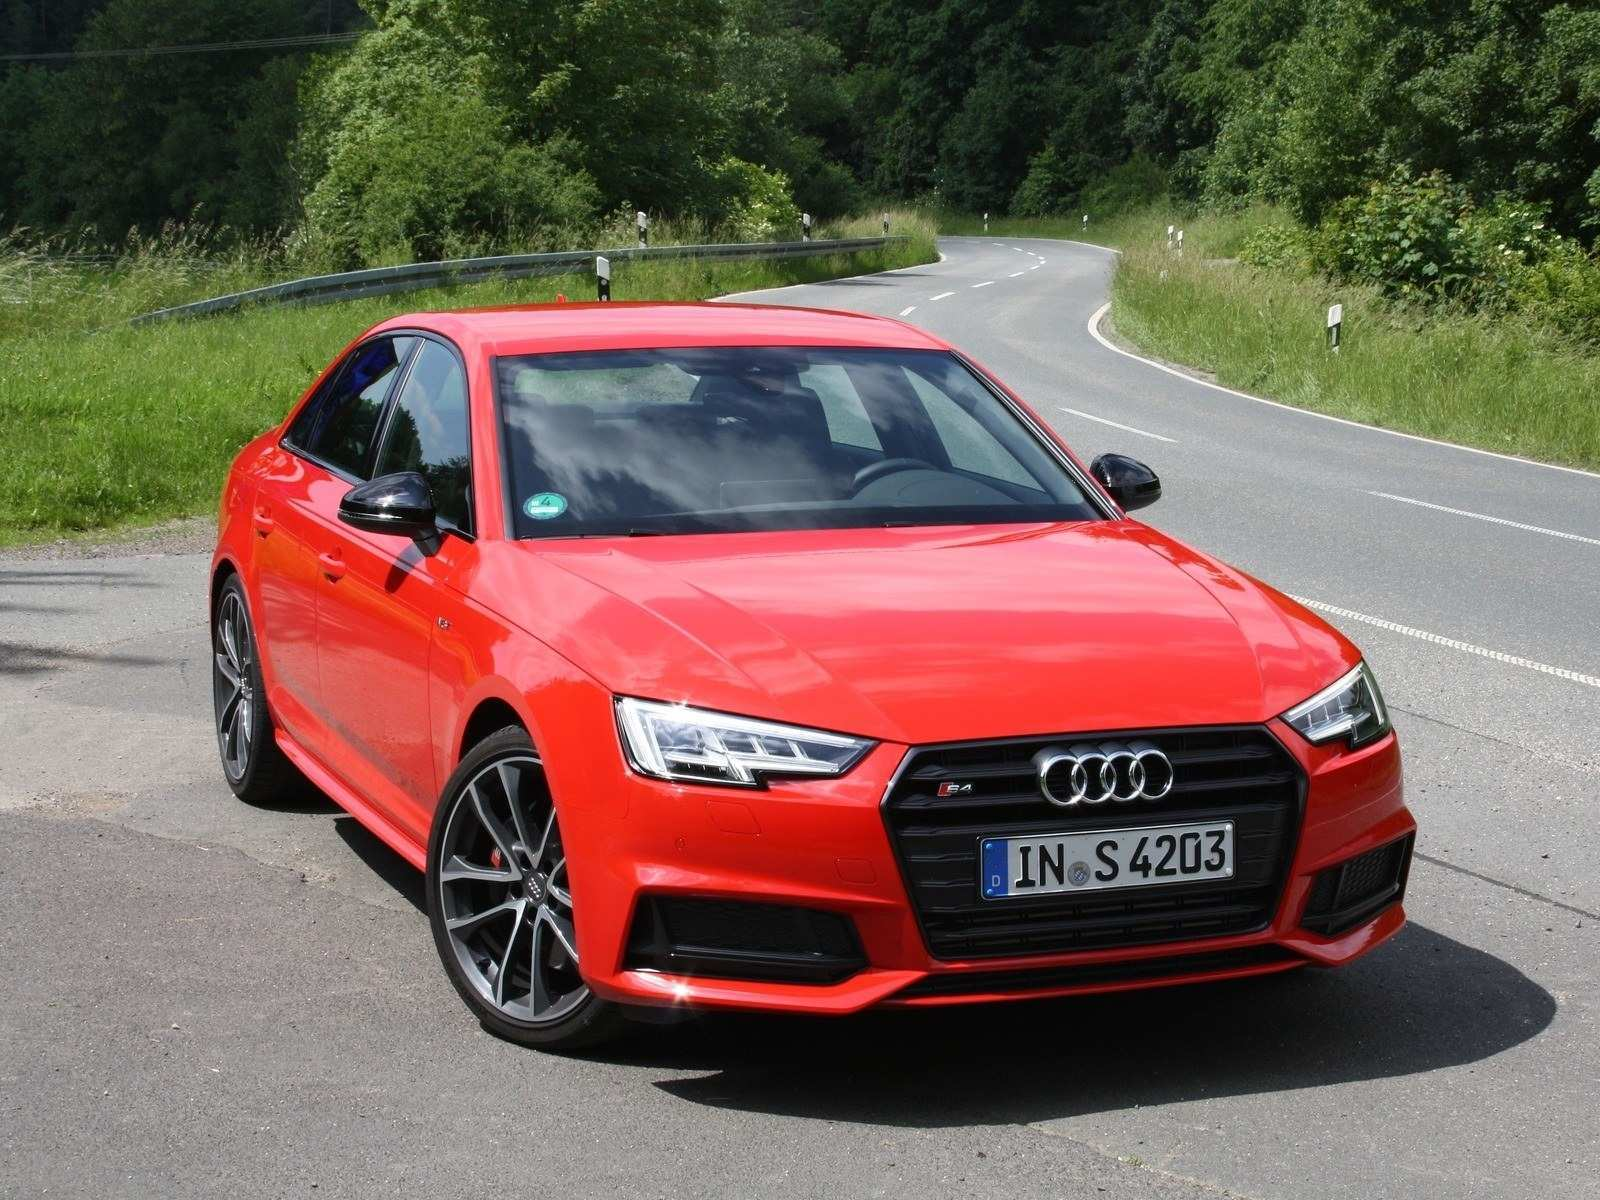 49 New 2020 Audi S4 Pictures with 2020 Audi S4